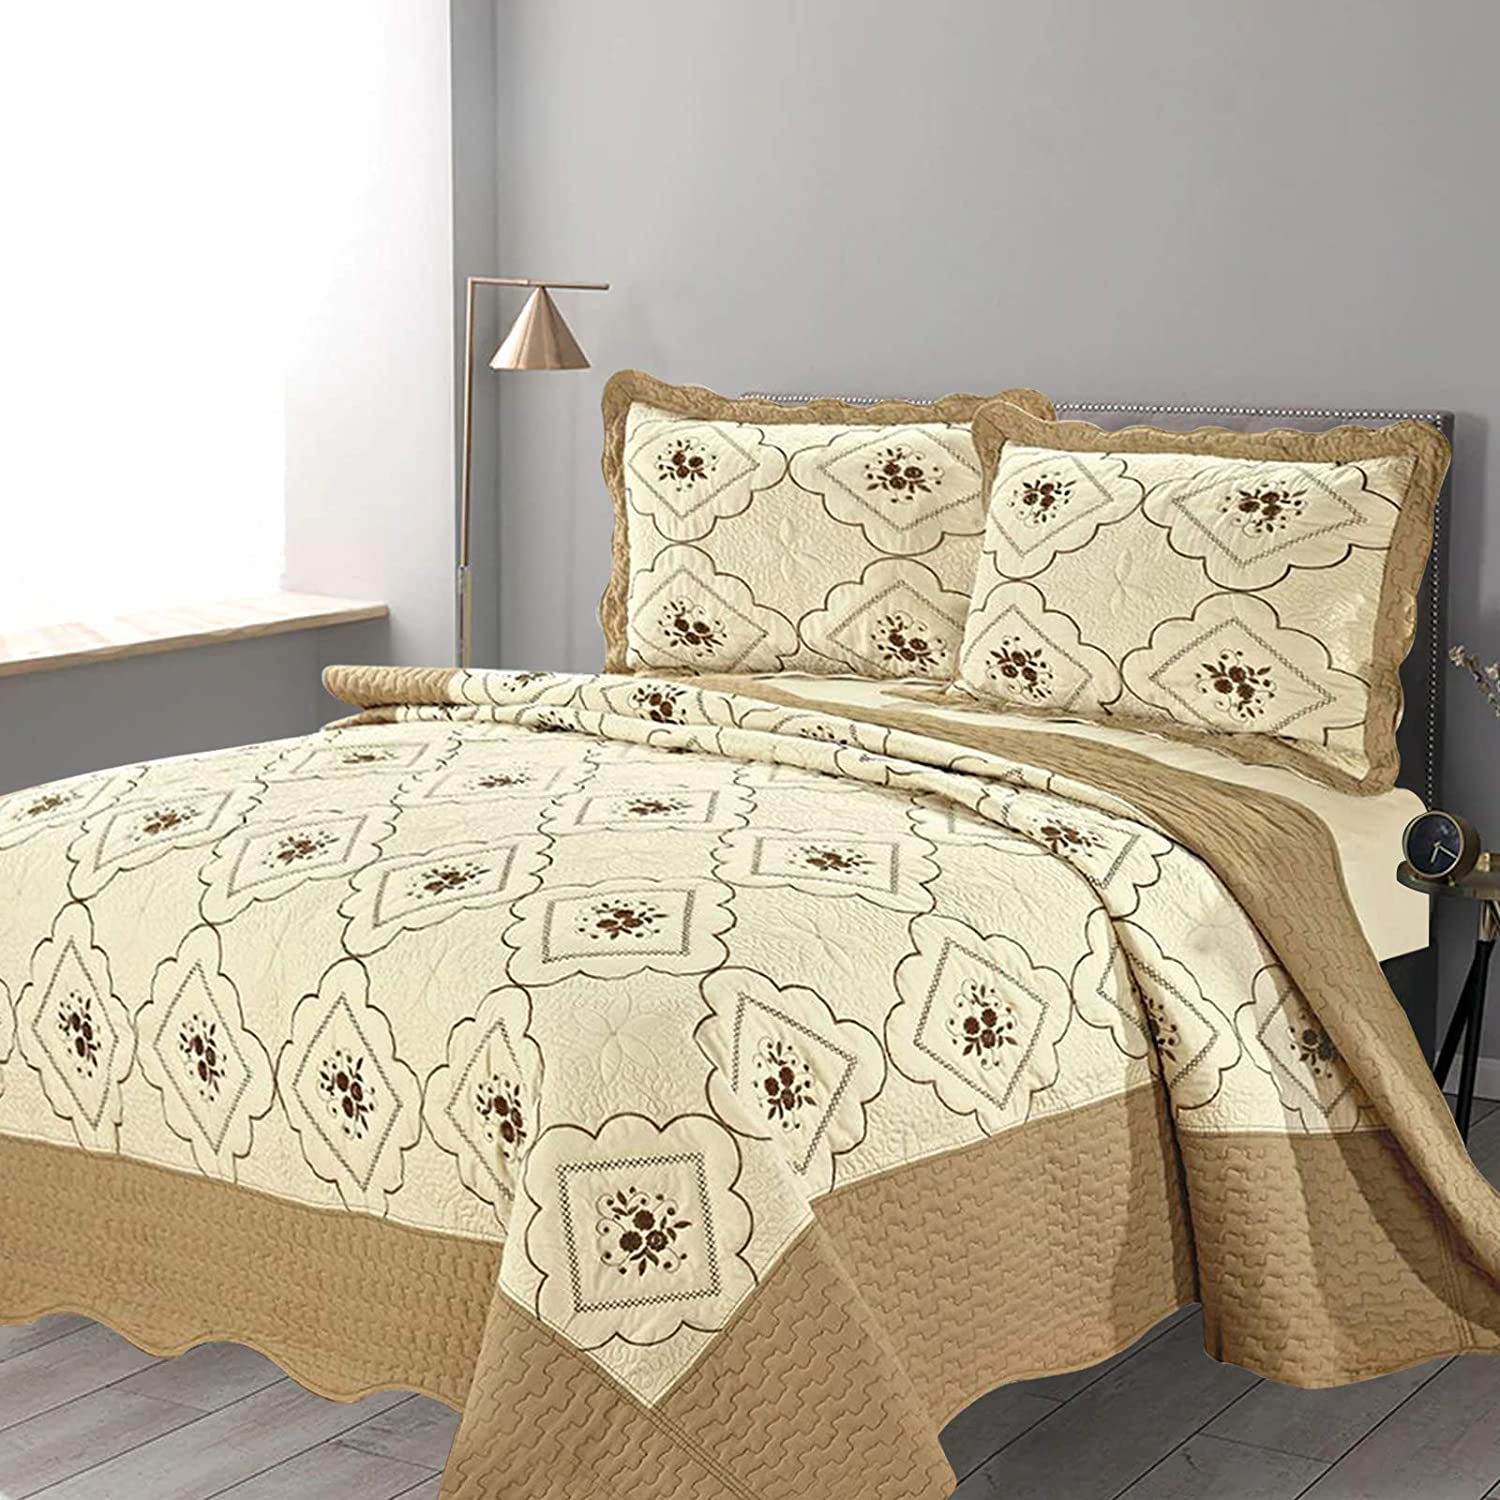 Blue Hafaa 3 Piece Bedding Set Double Bed Patchwork Embroidered Bedspread with 2 Pillow Shams